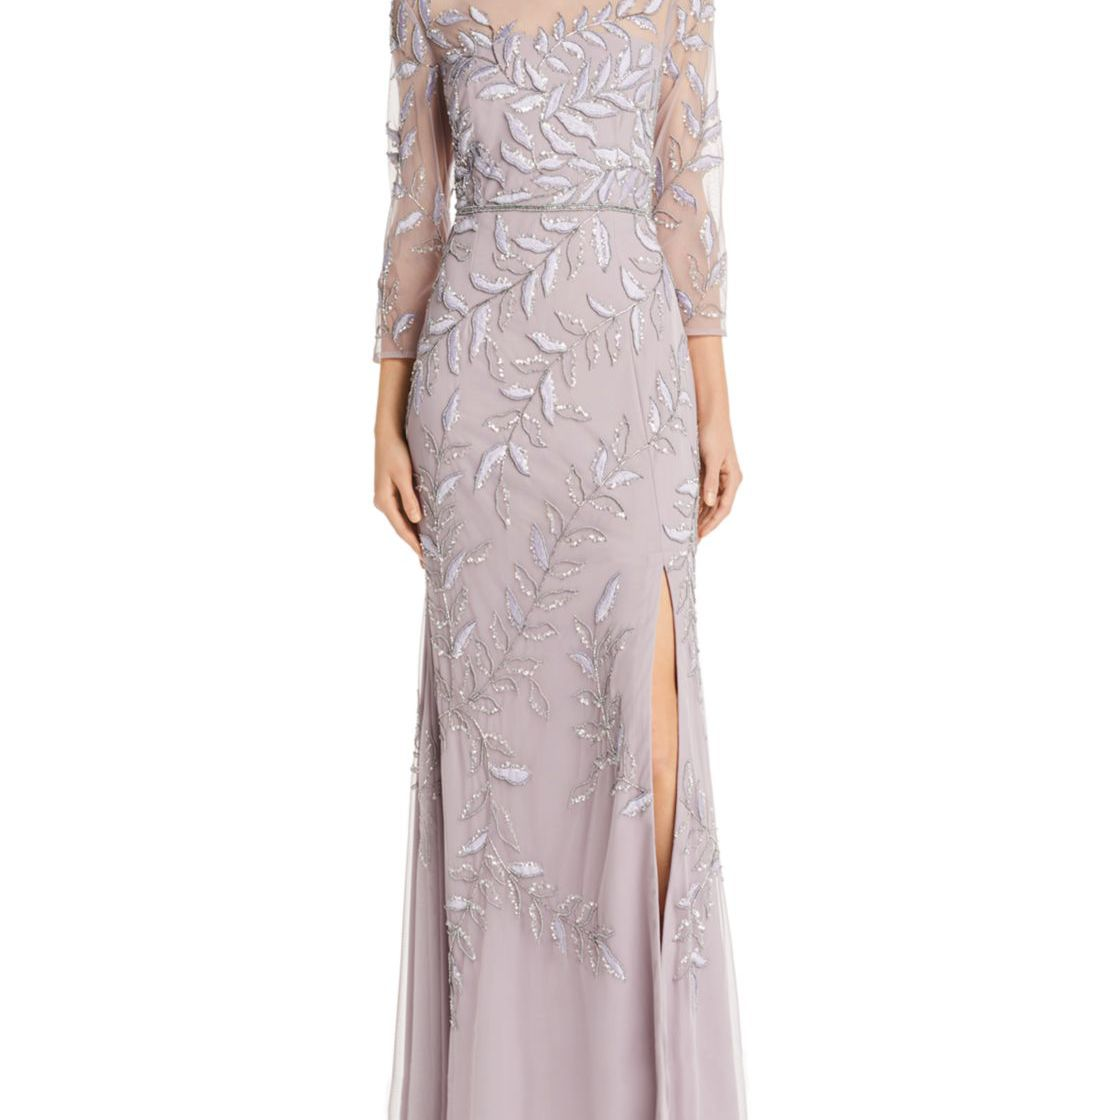 Spring Mother Of The Bride Dresses 2020.31 Mother Of The Bride Dresses For Every Style